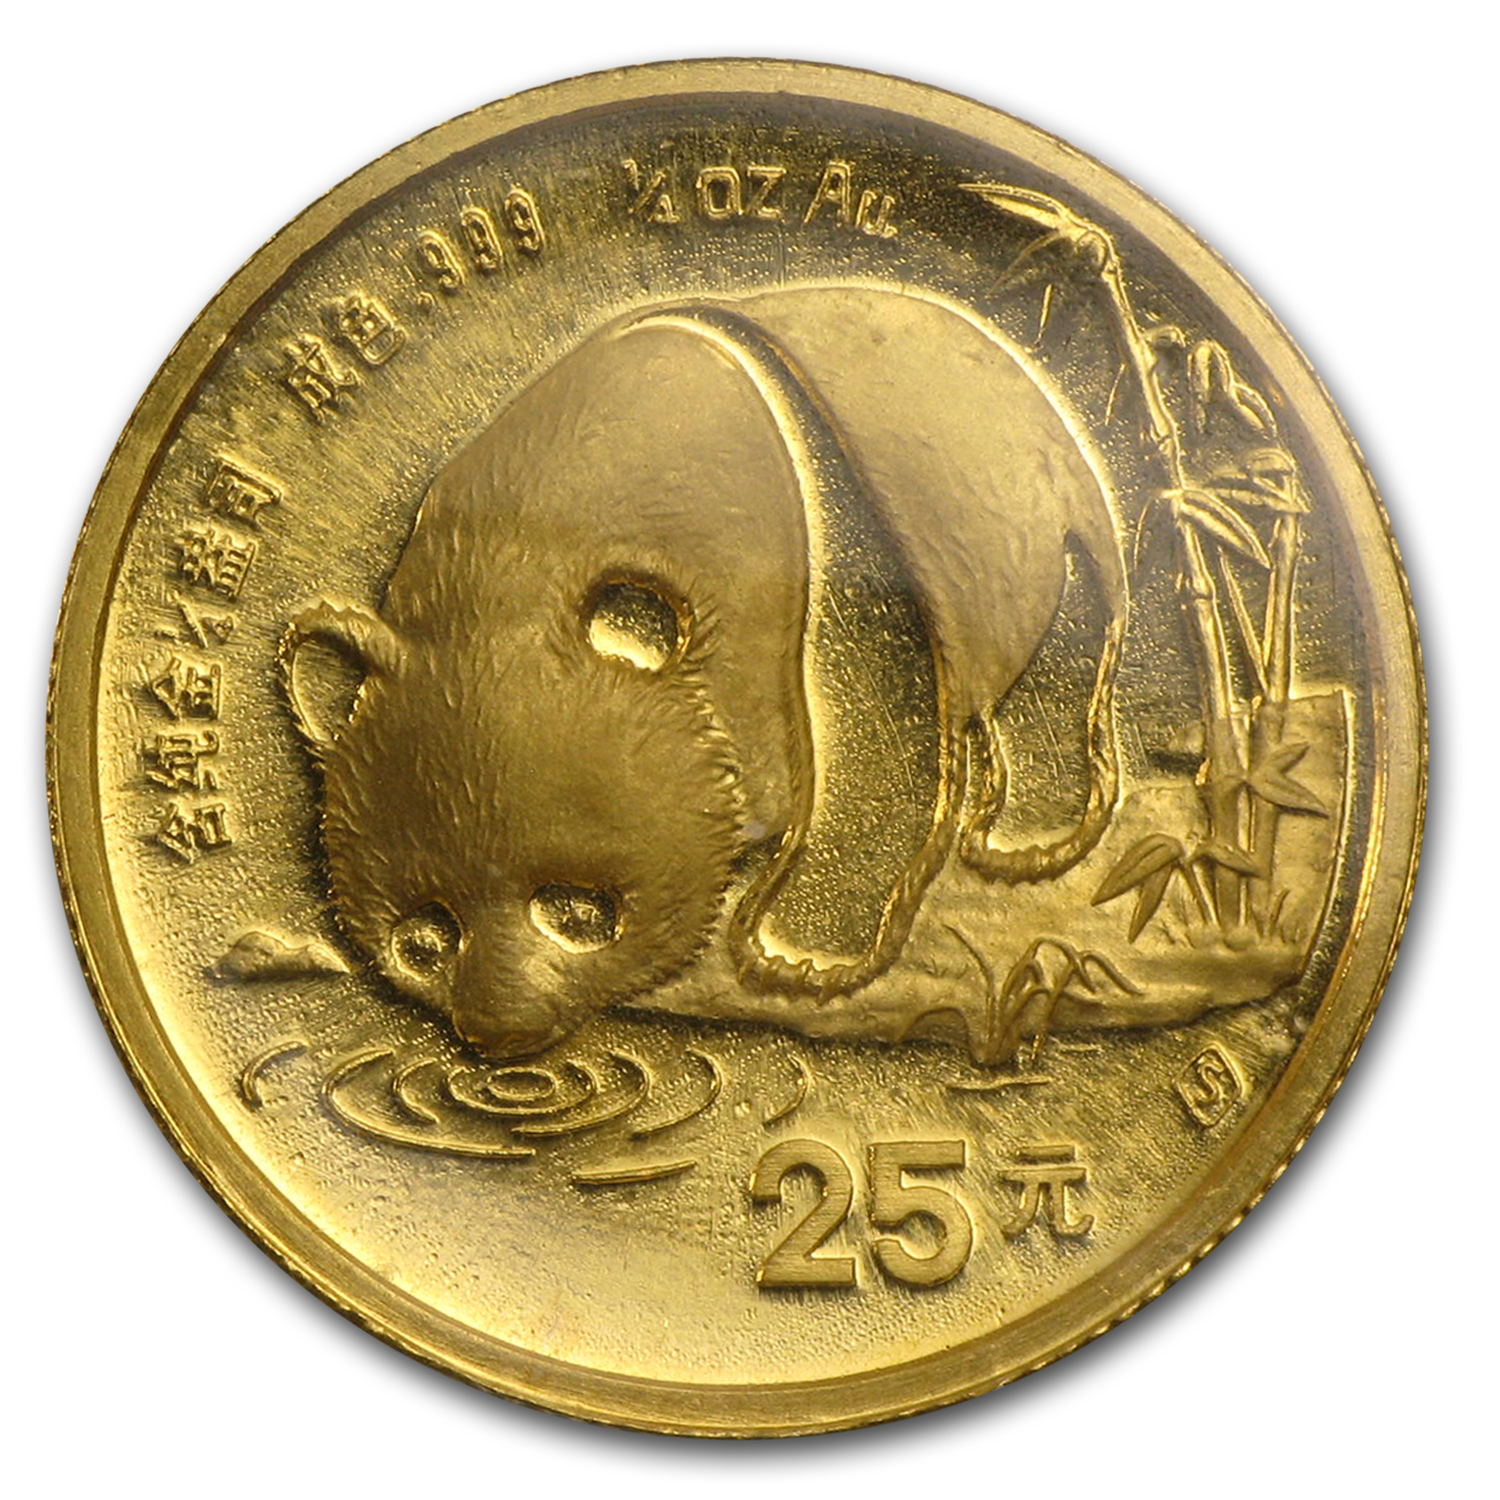 1987-S China 1/4 oz Gold Panda BU (Sealed)